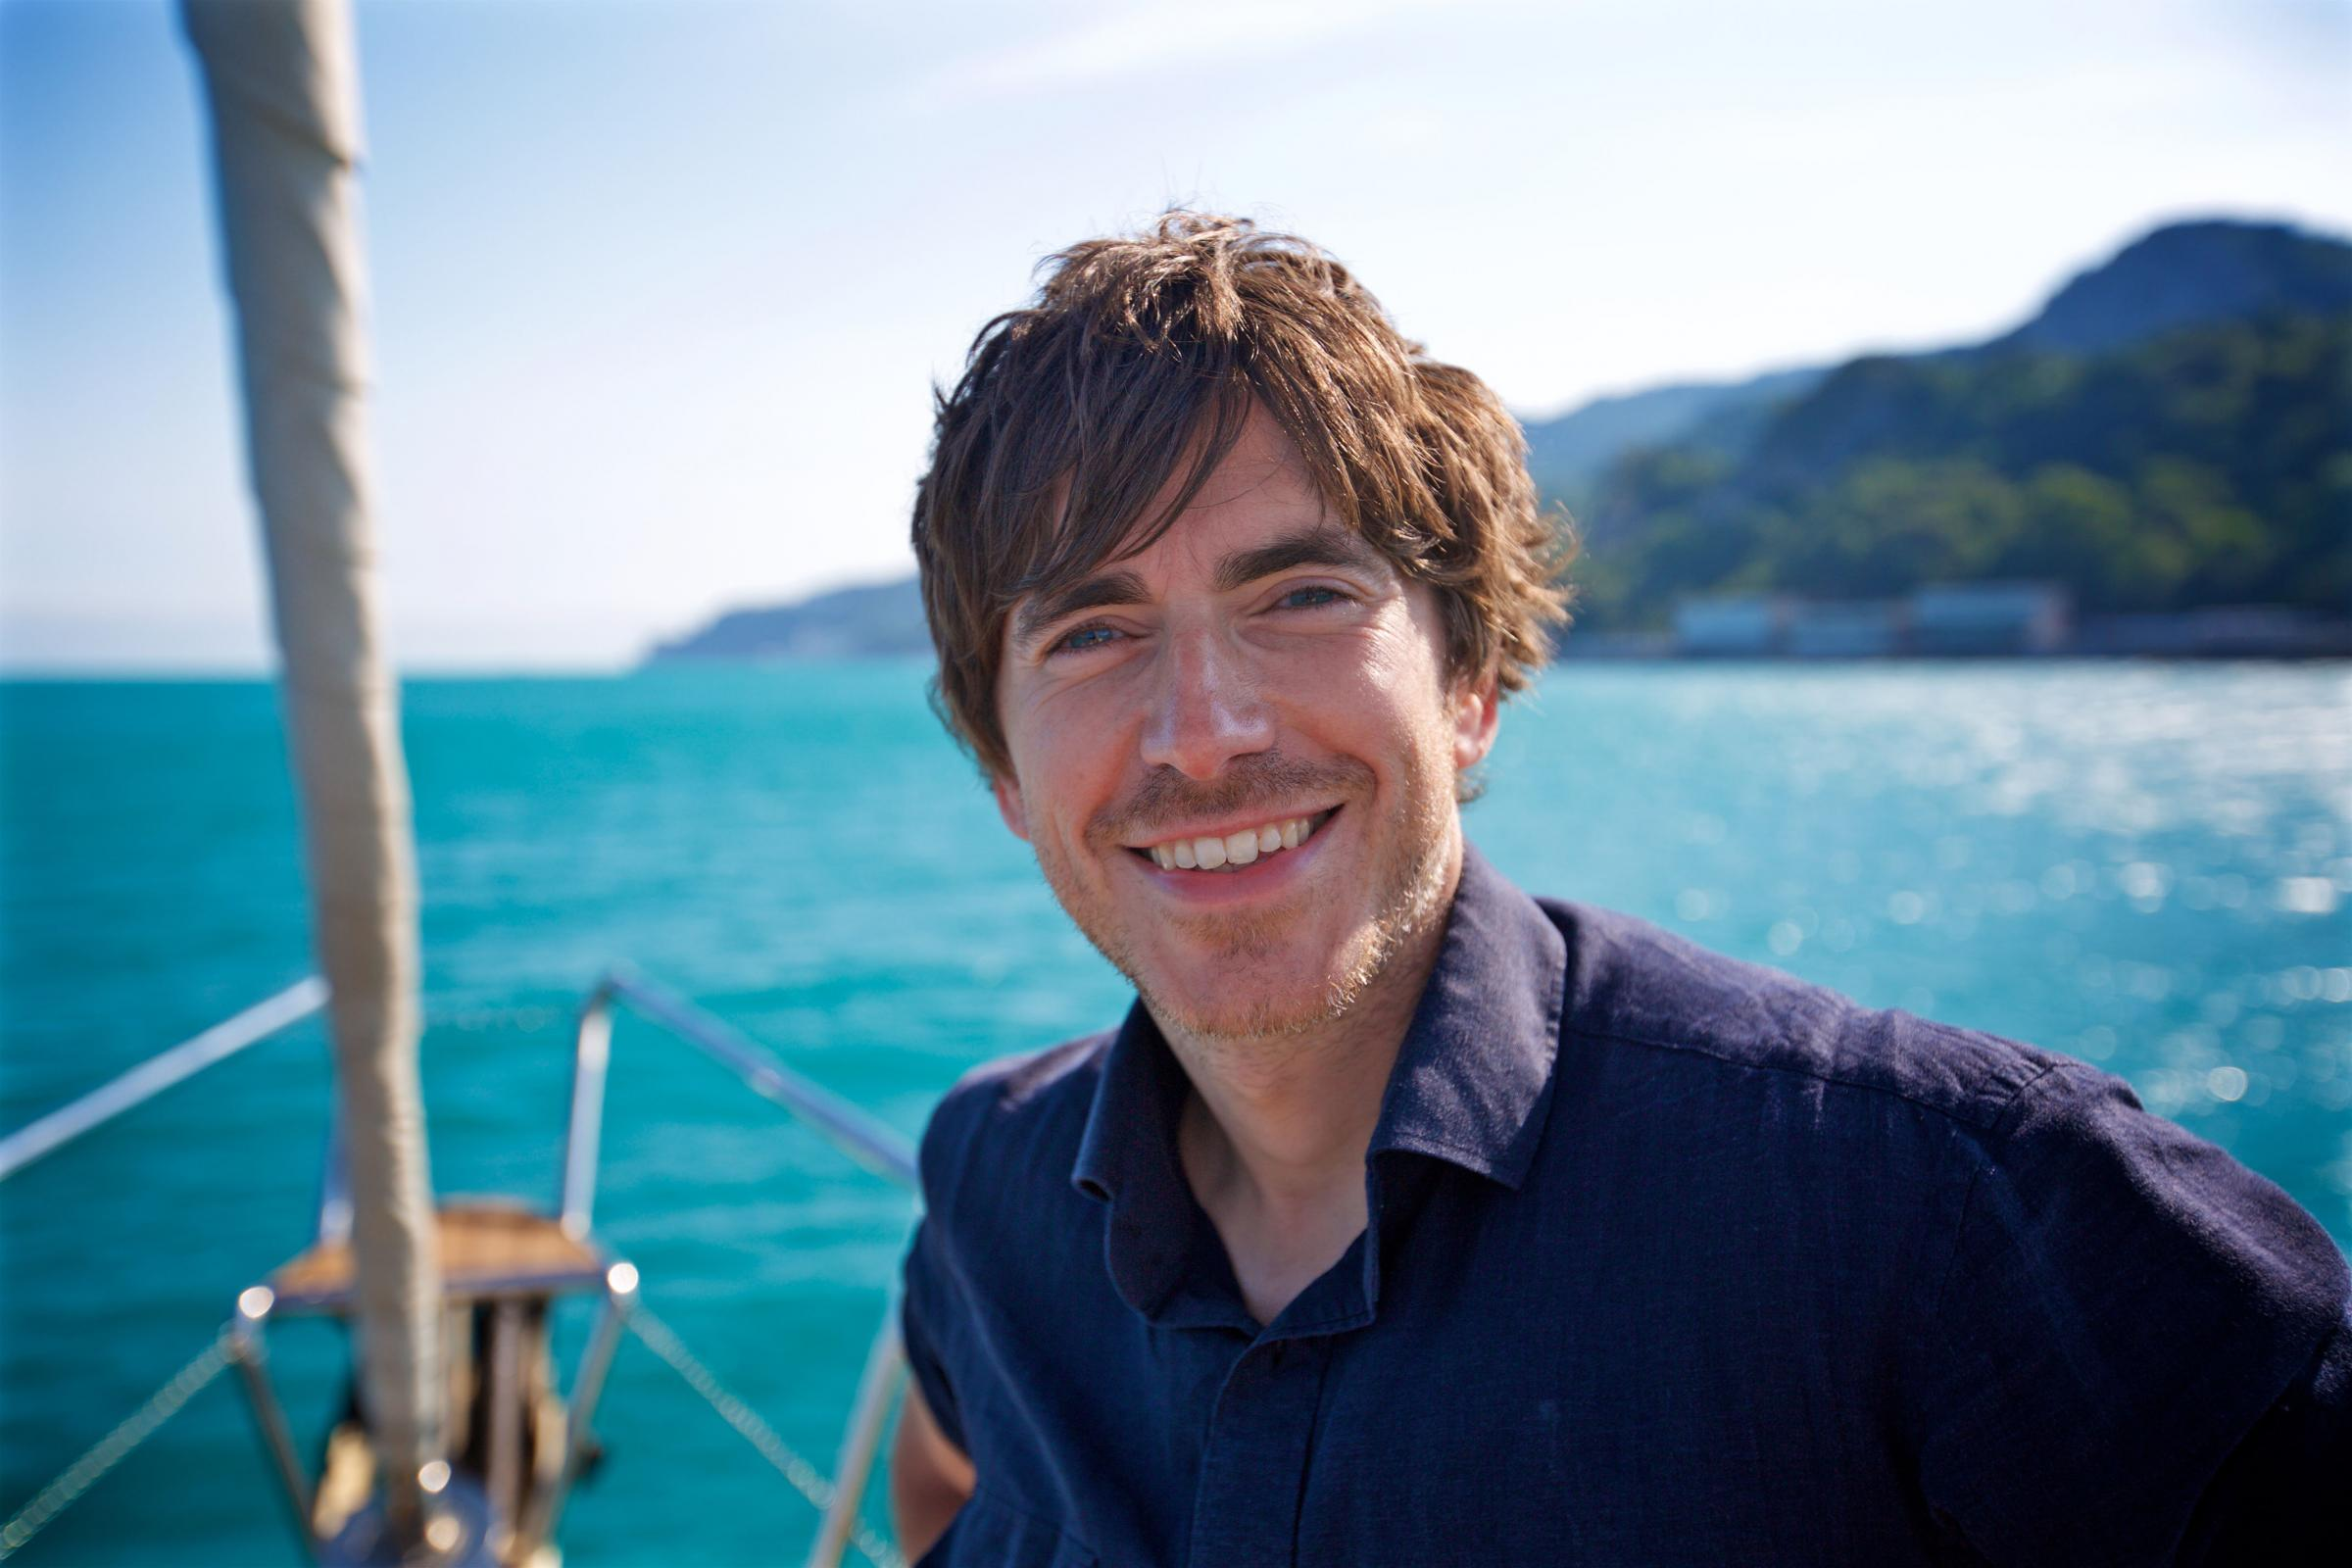 Simon Reeve has journeyed across Russia for his show